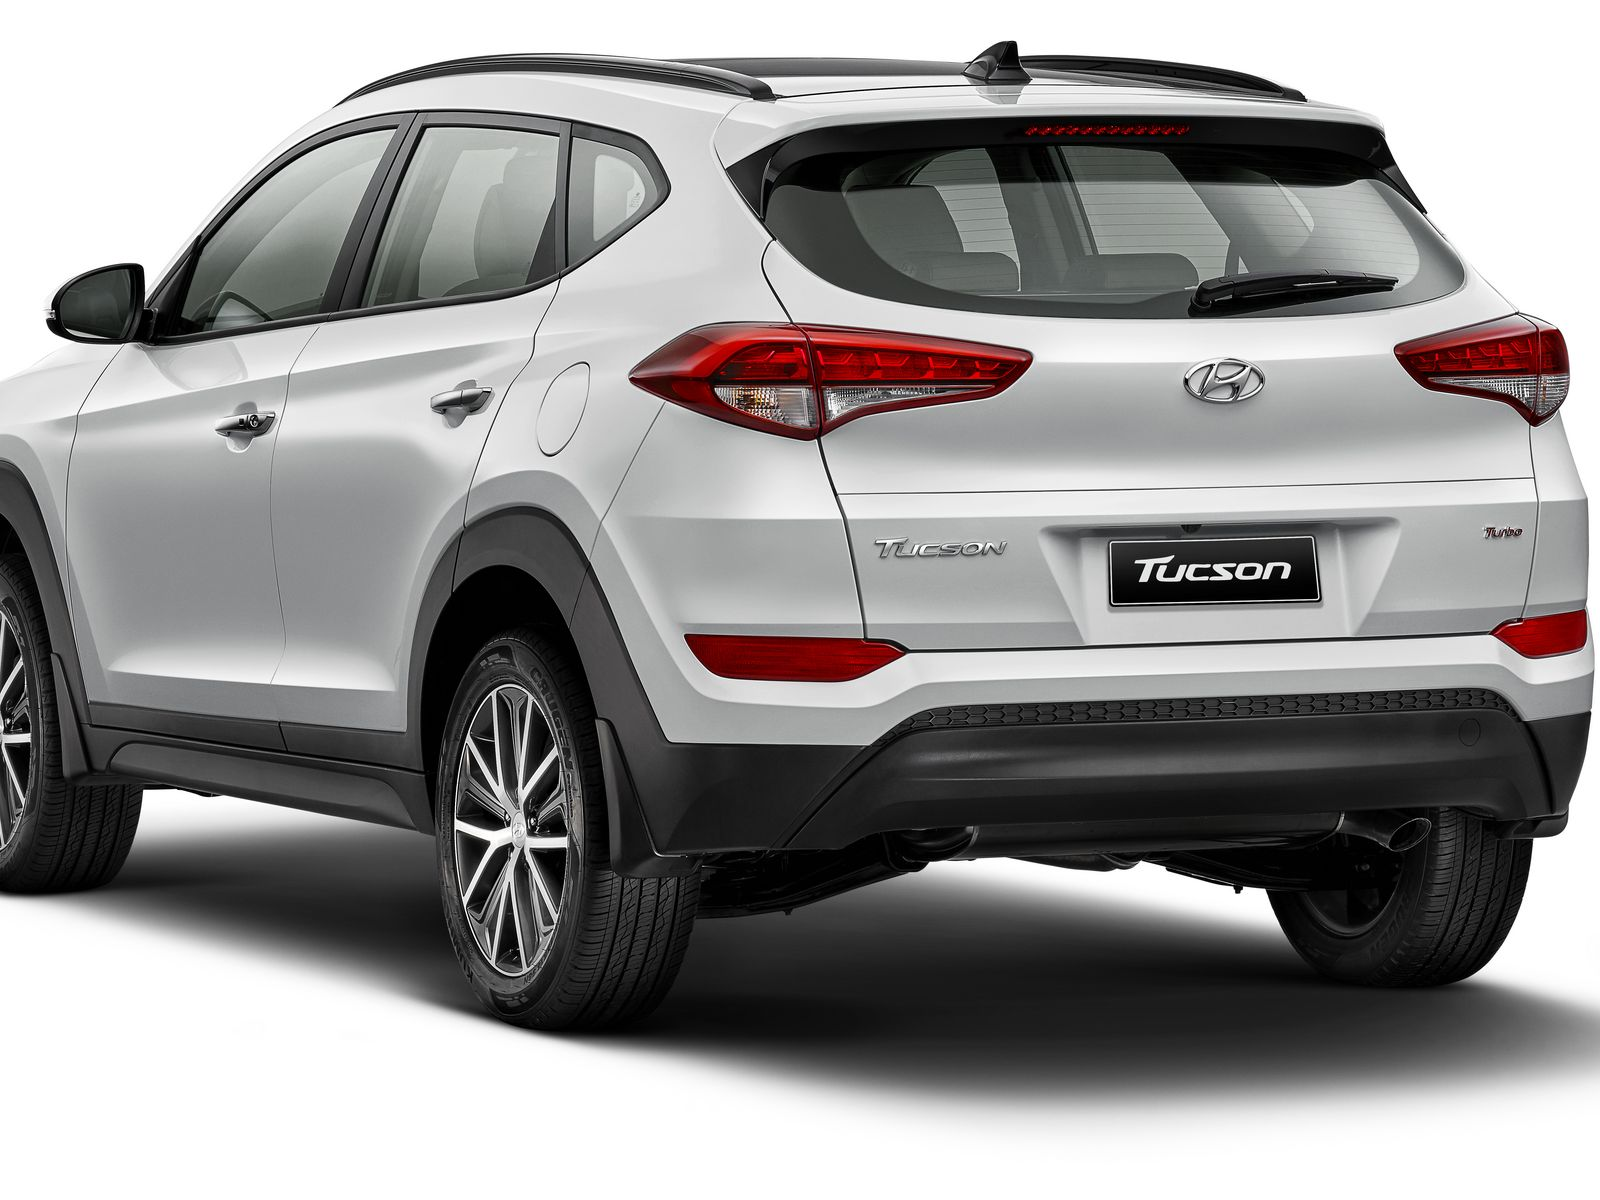 hyundai new tucson chega para ficar entre ix35 e santa fe. Black Bedroom Furniture Sets. Home Design Ideas